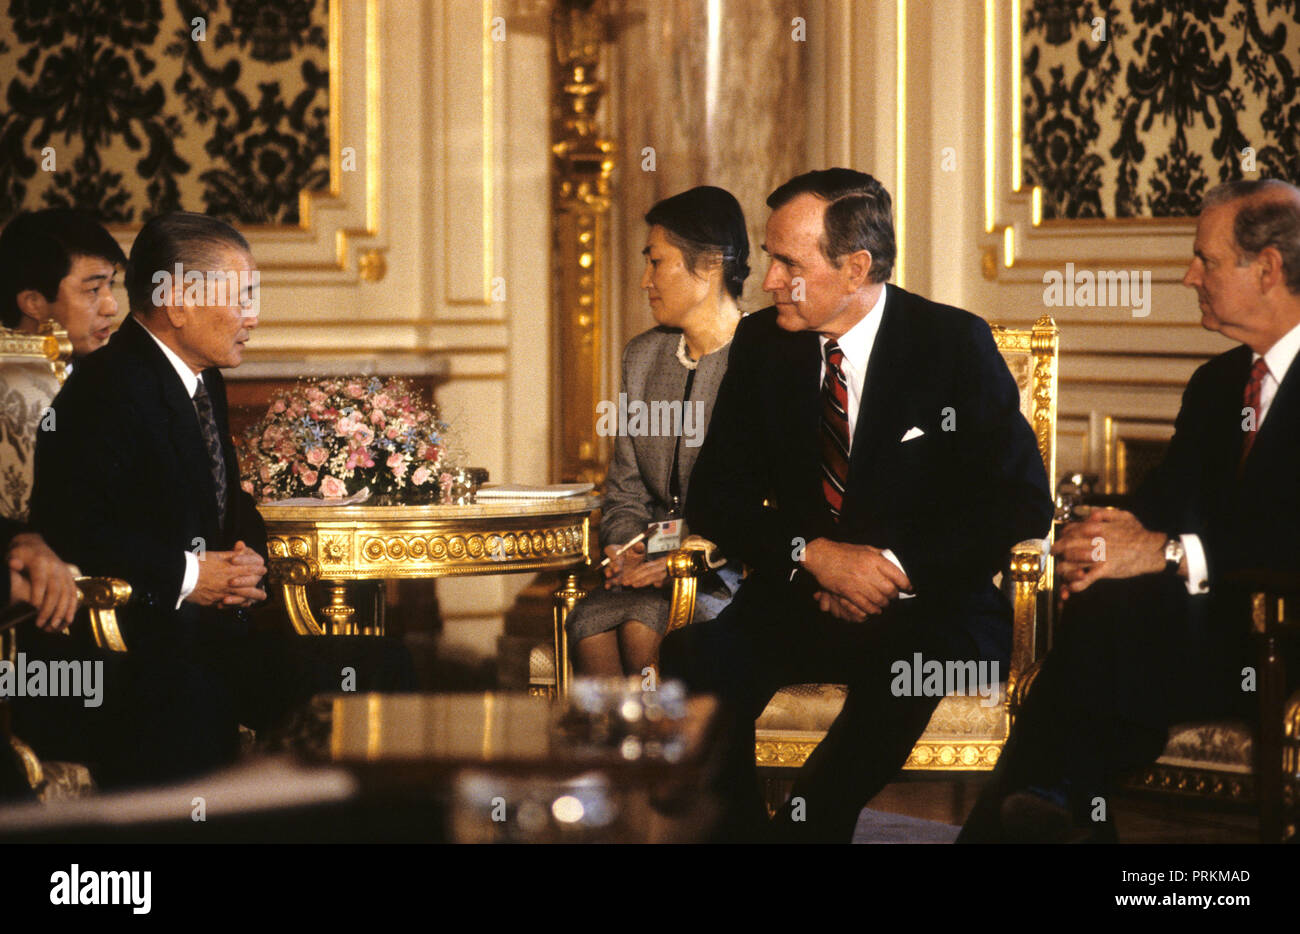 President HW Bush meets with Japanese Prime Minister Noboru Takeshita when  President Bush traveled to Japan to attend the funeral of Hirohito in February 1989   Photograph by Dennis Brack bb24 - Stock Image